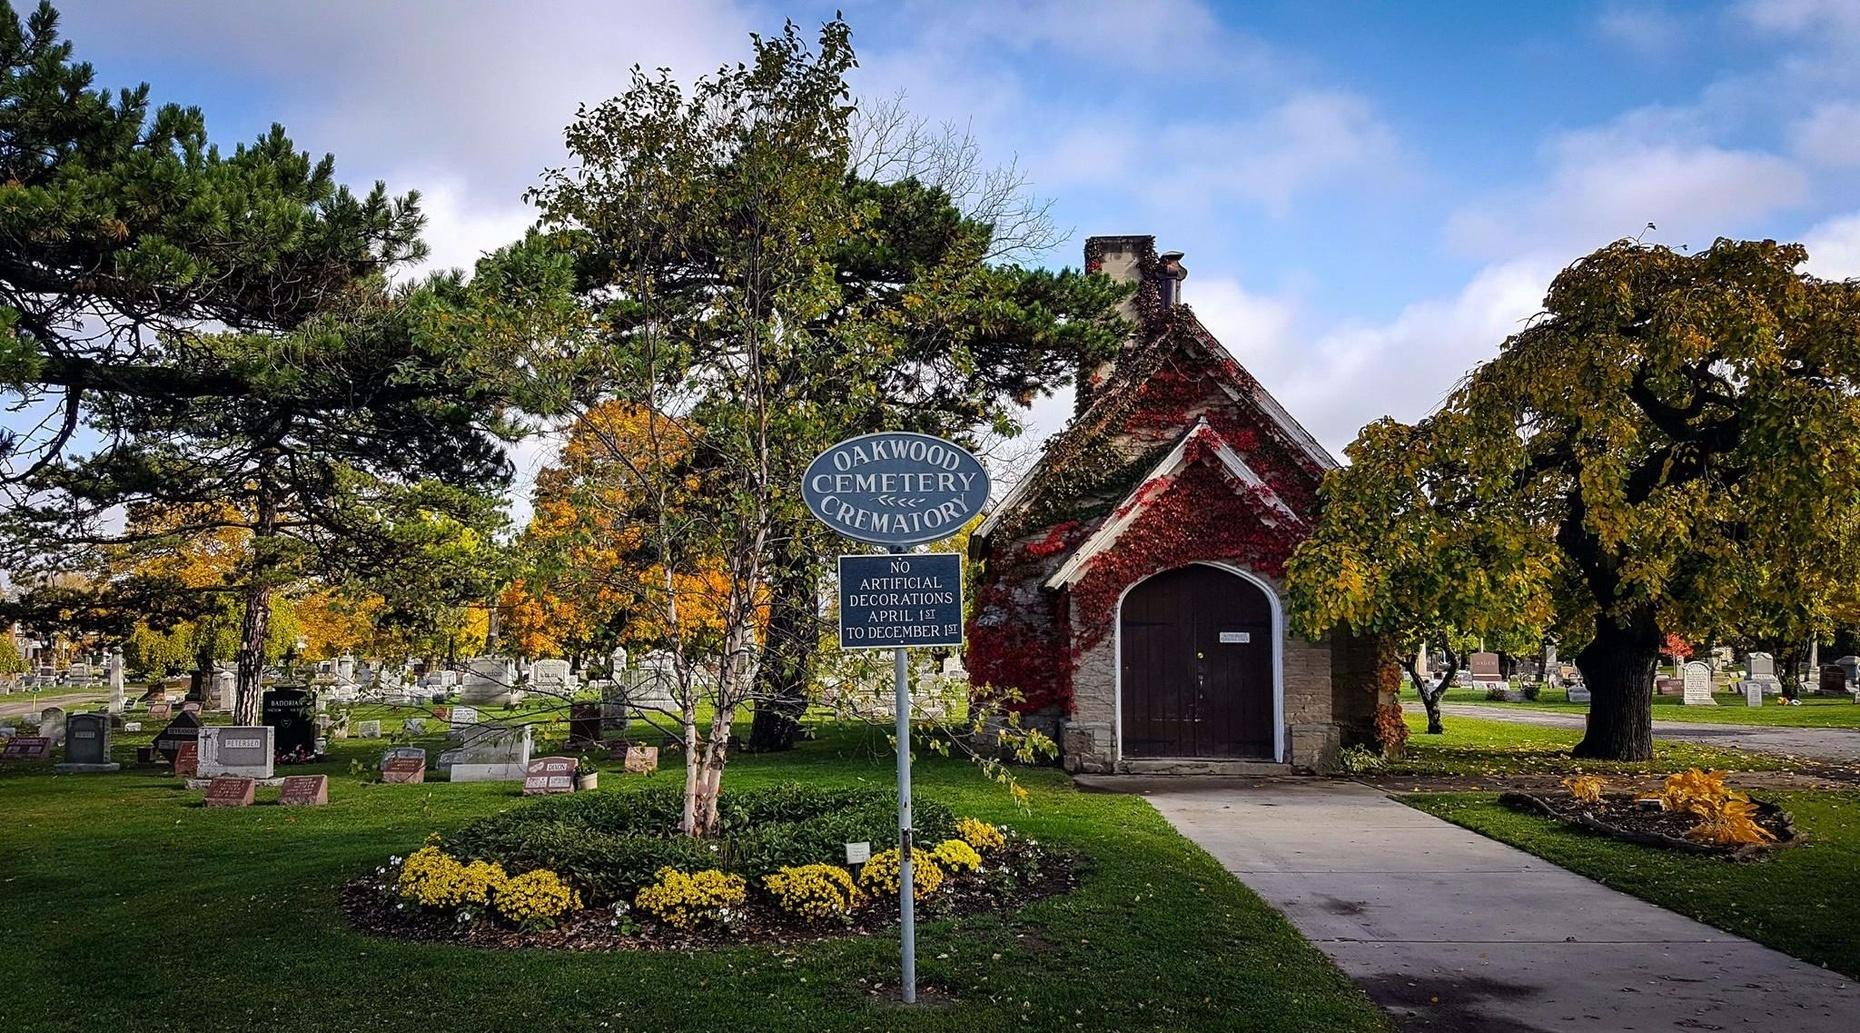 Afternoon Niagara Daredevil Walking Tour at Oakwood Cemetery